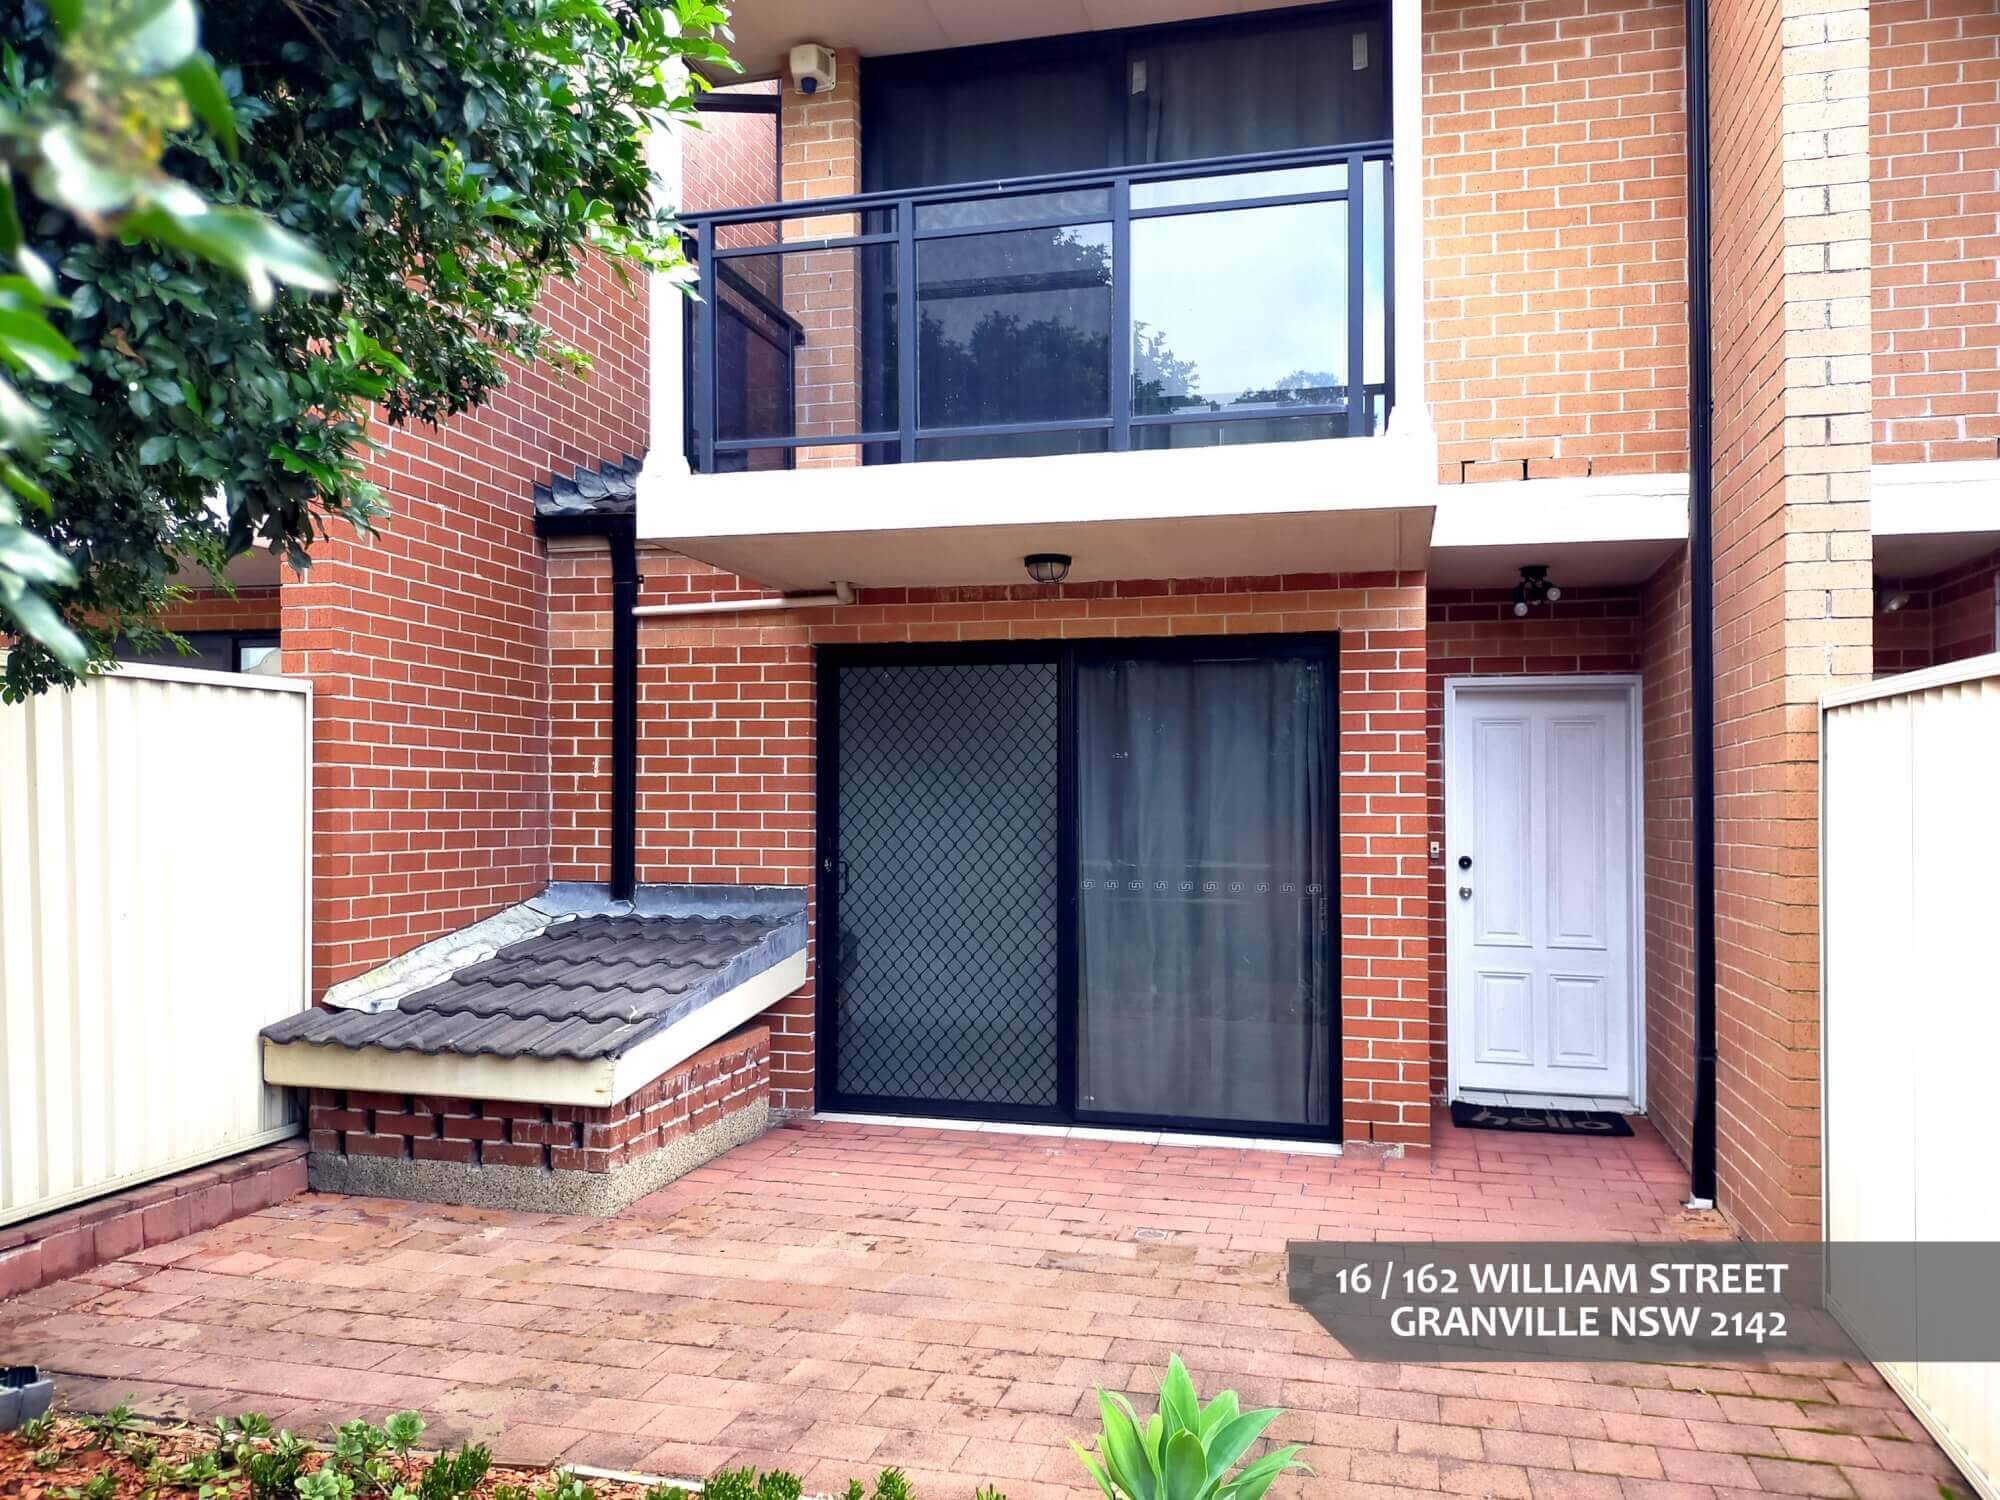 Property for sale 16/162 William Street Granville NSW 2142